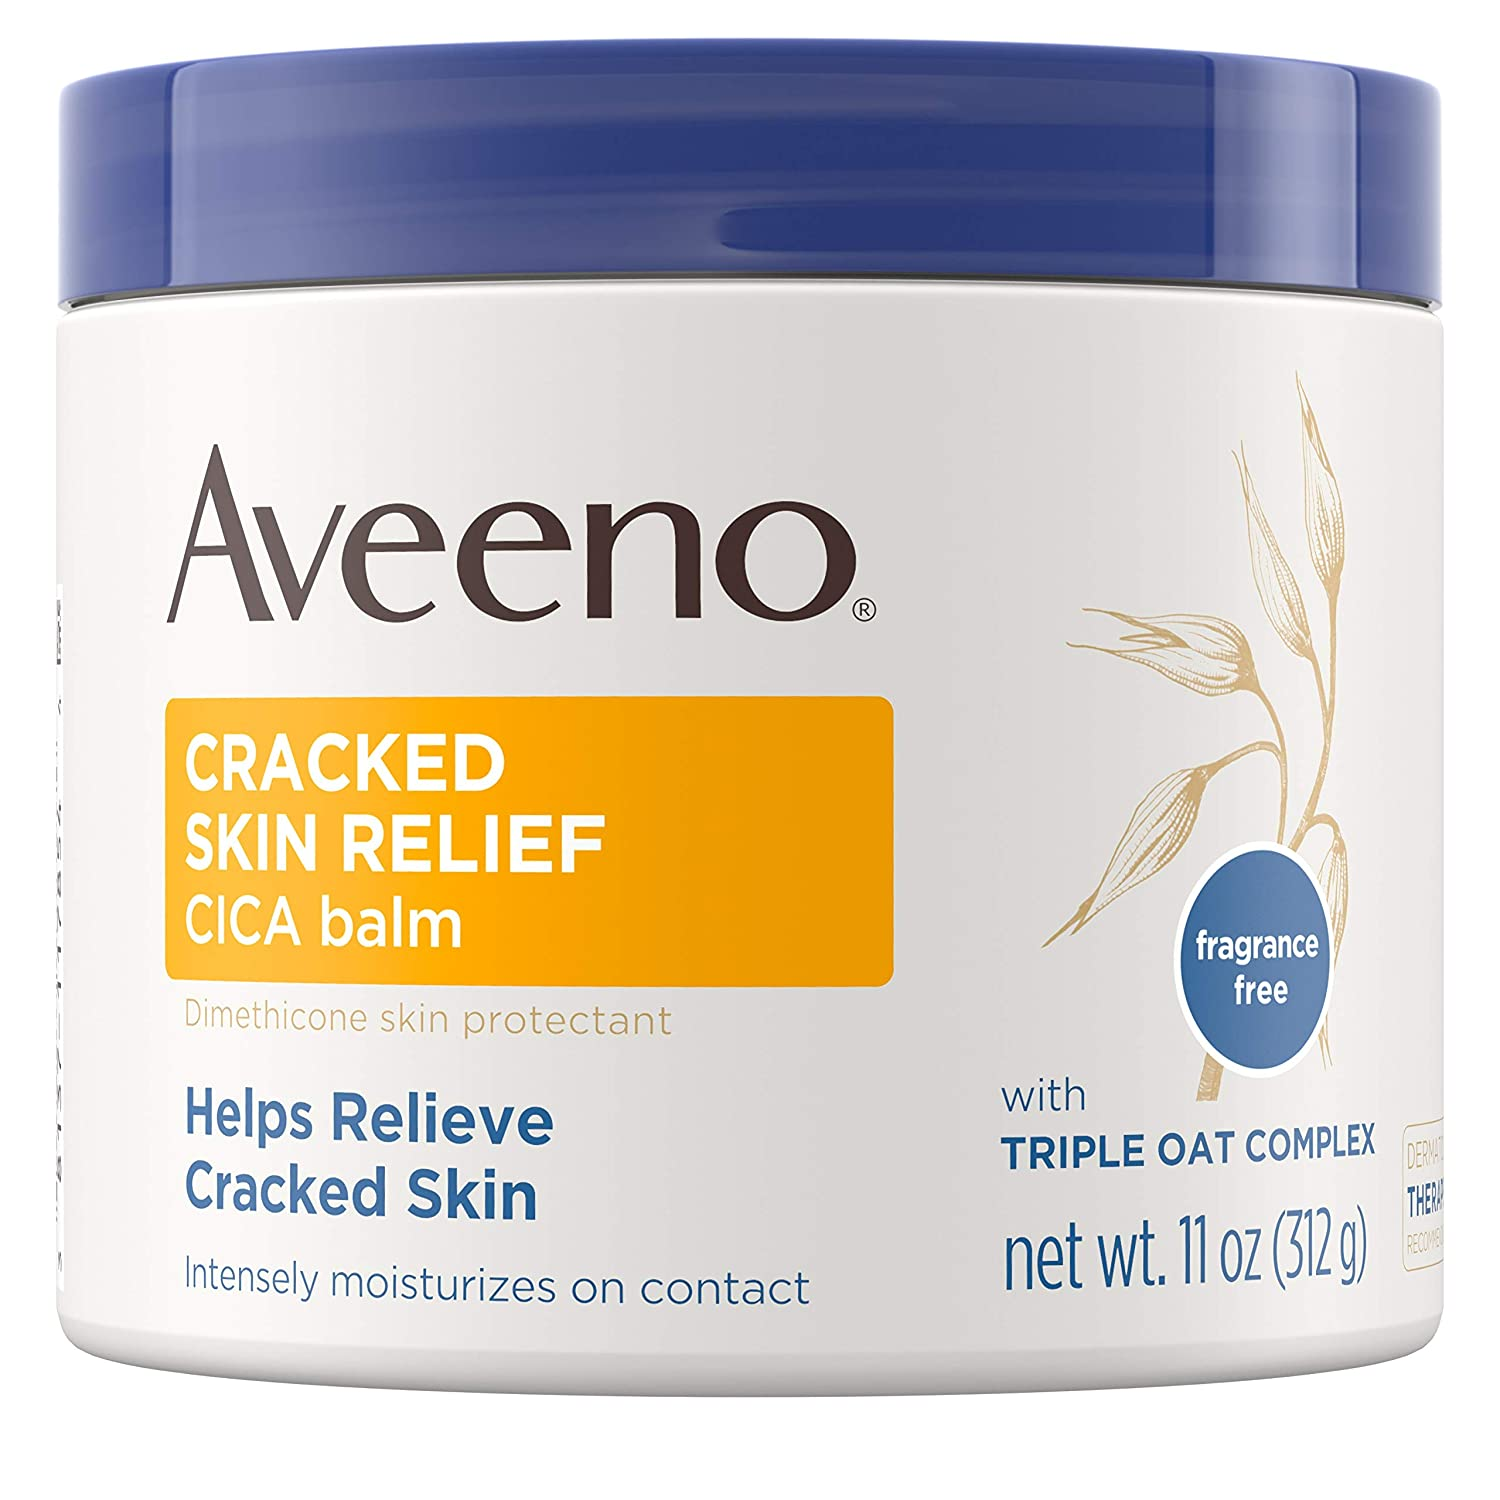 Aveeno Cracked Skin Relief CICA Balm with Triple Oat Complex, Moisturizing Dimethicone Skin Balm, Fragrance-Free, 11 oz